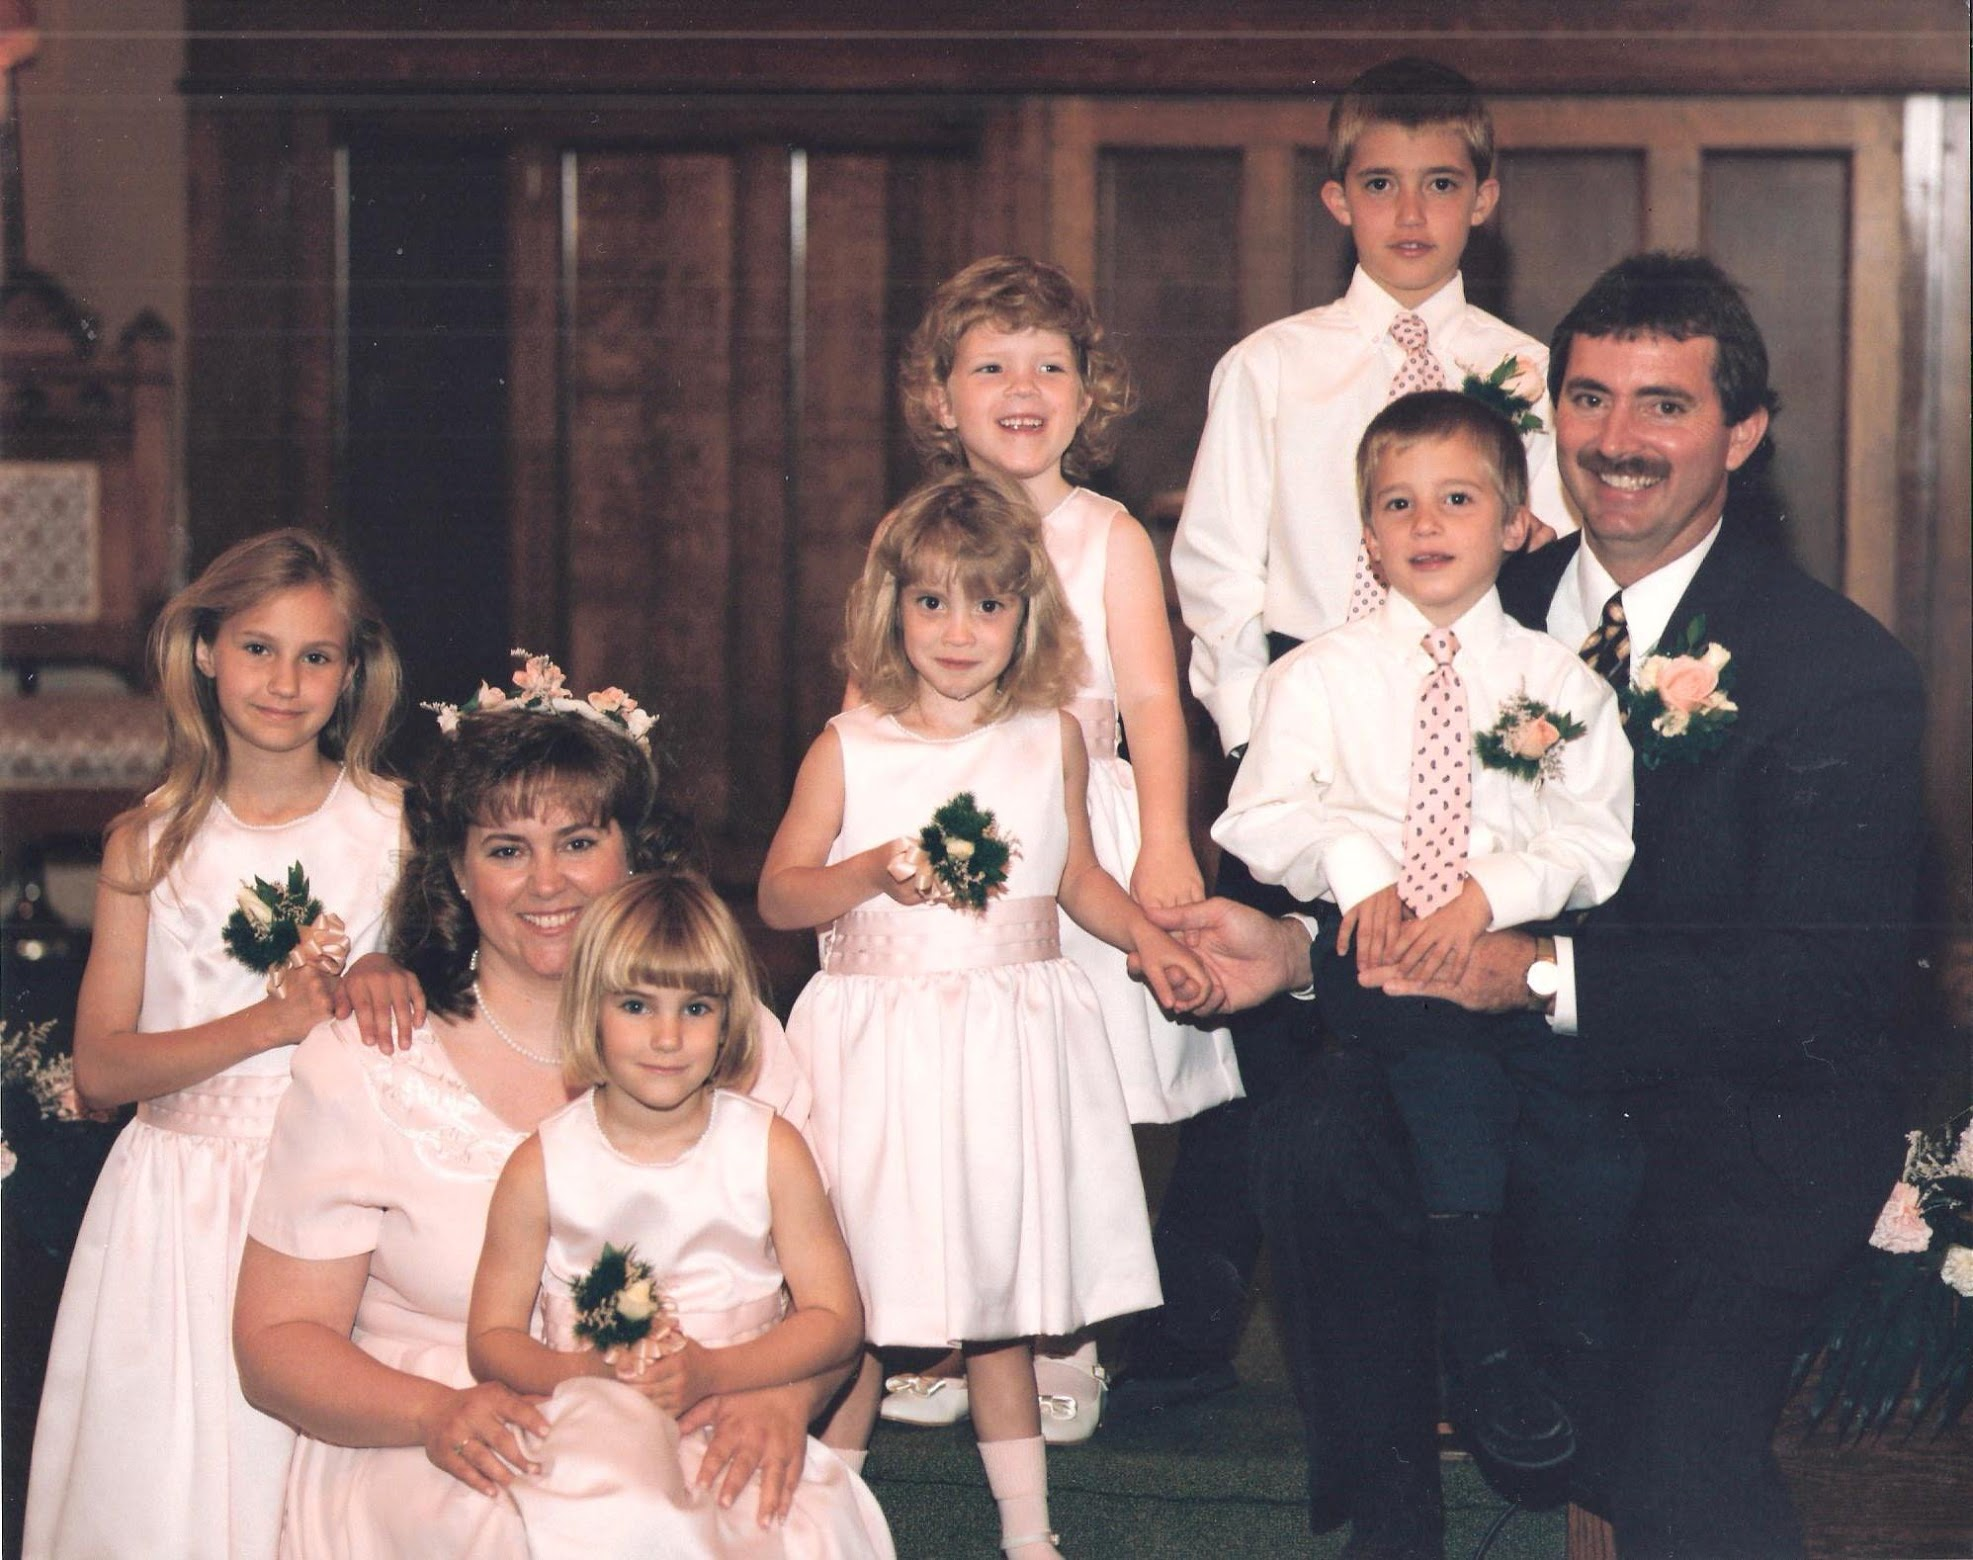 Larry marries Denise, a young widow with two children.